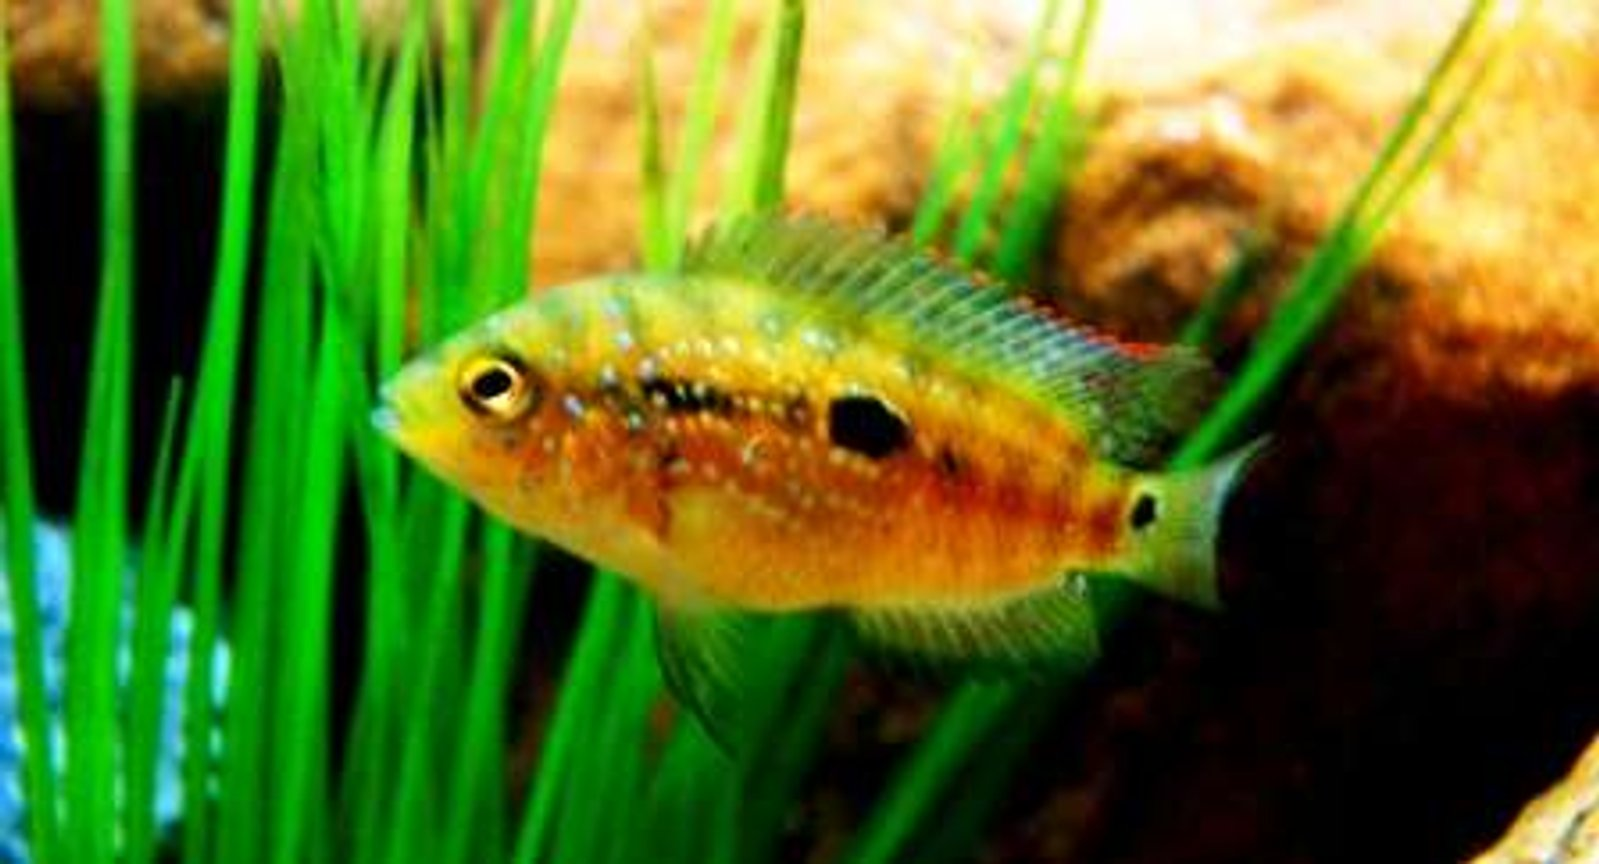 freshwater fish - nandopsis octofasciatum - jack dempsey stocking in 20 gallons tank - Young Jack Dempsey